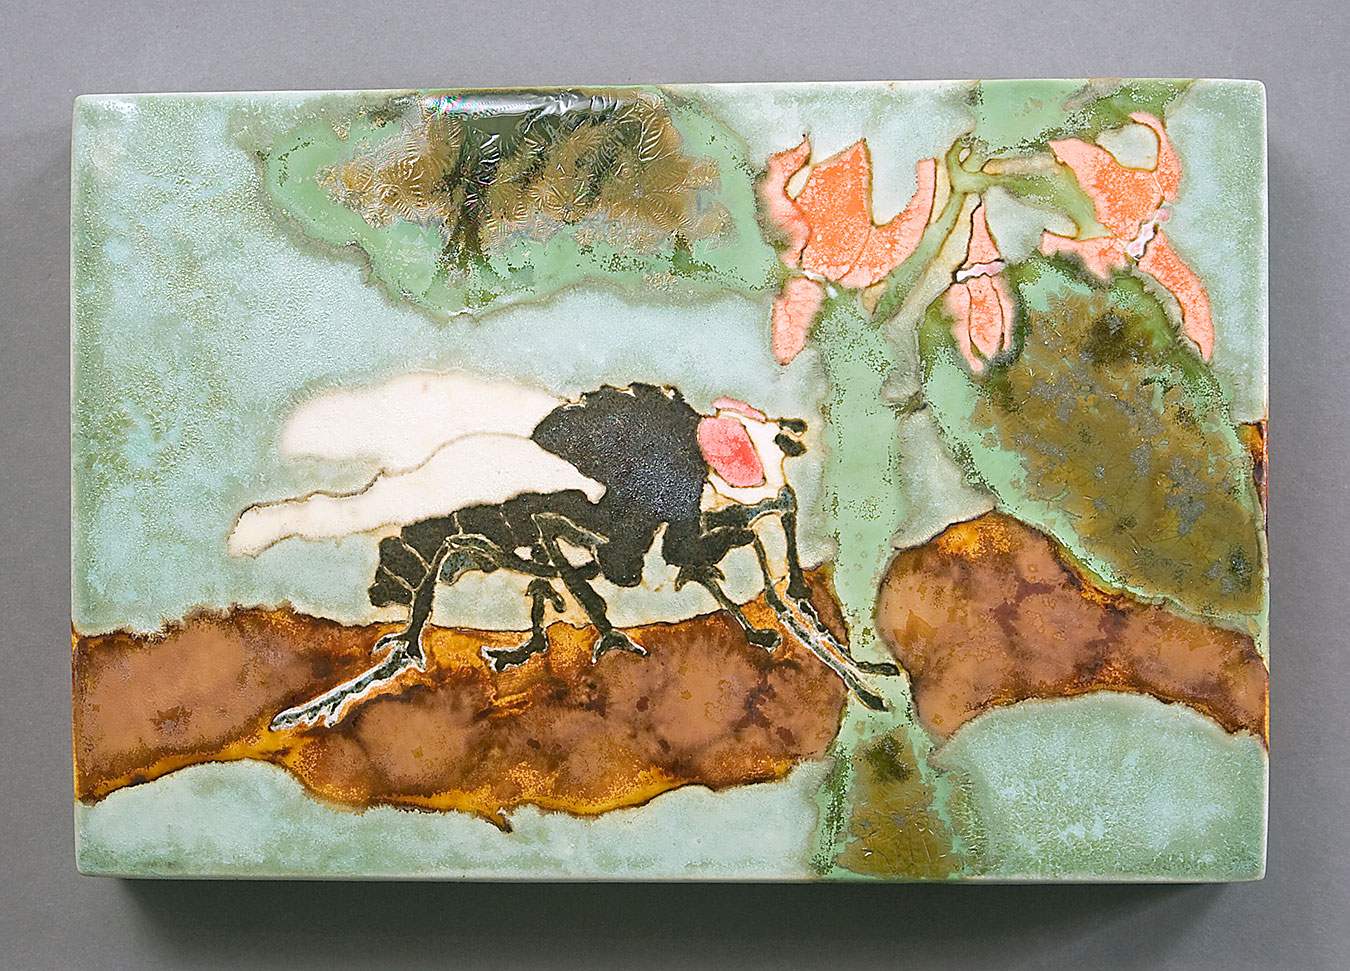 Red-Eye-Fly-Ceramic-Art-Glaze-Painting-Samantha-Henneke-Bulldog-Pottery.jpg